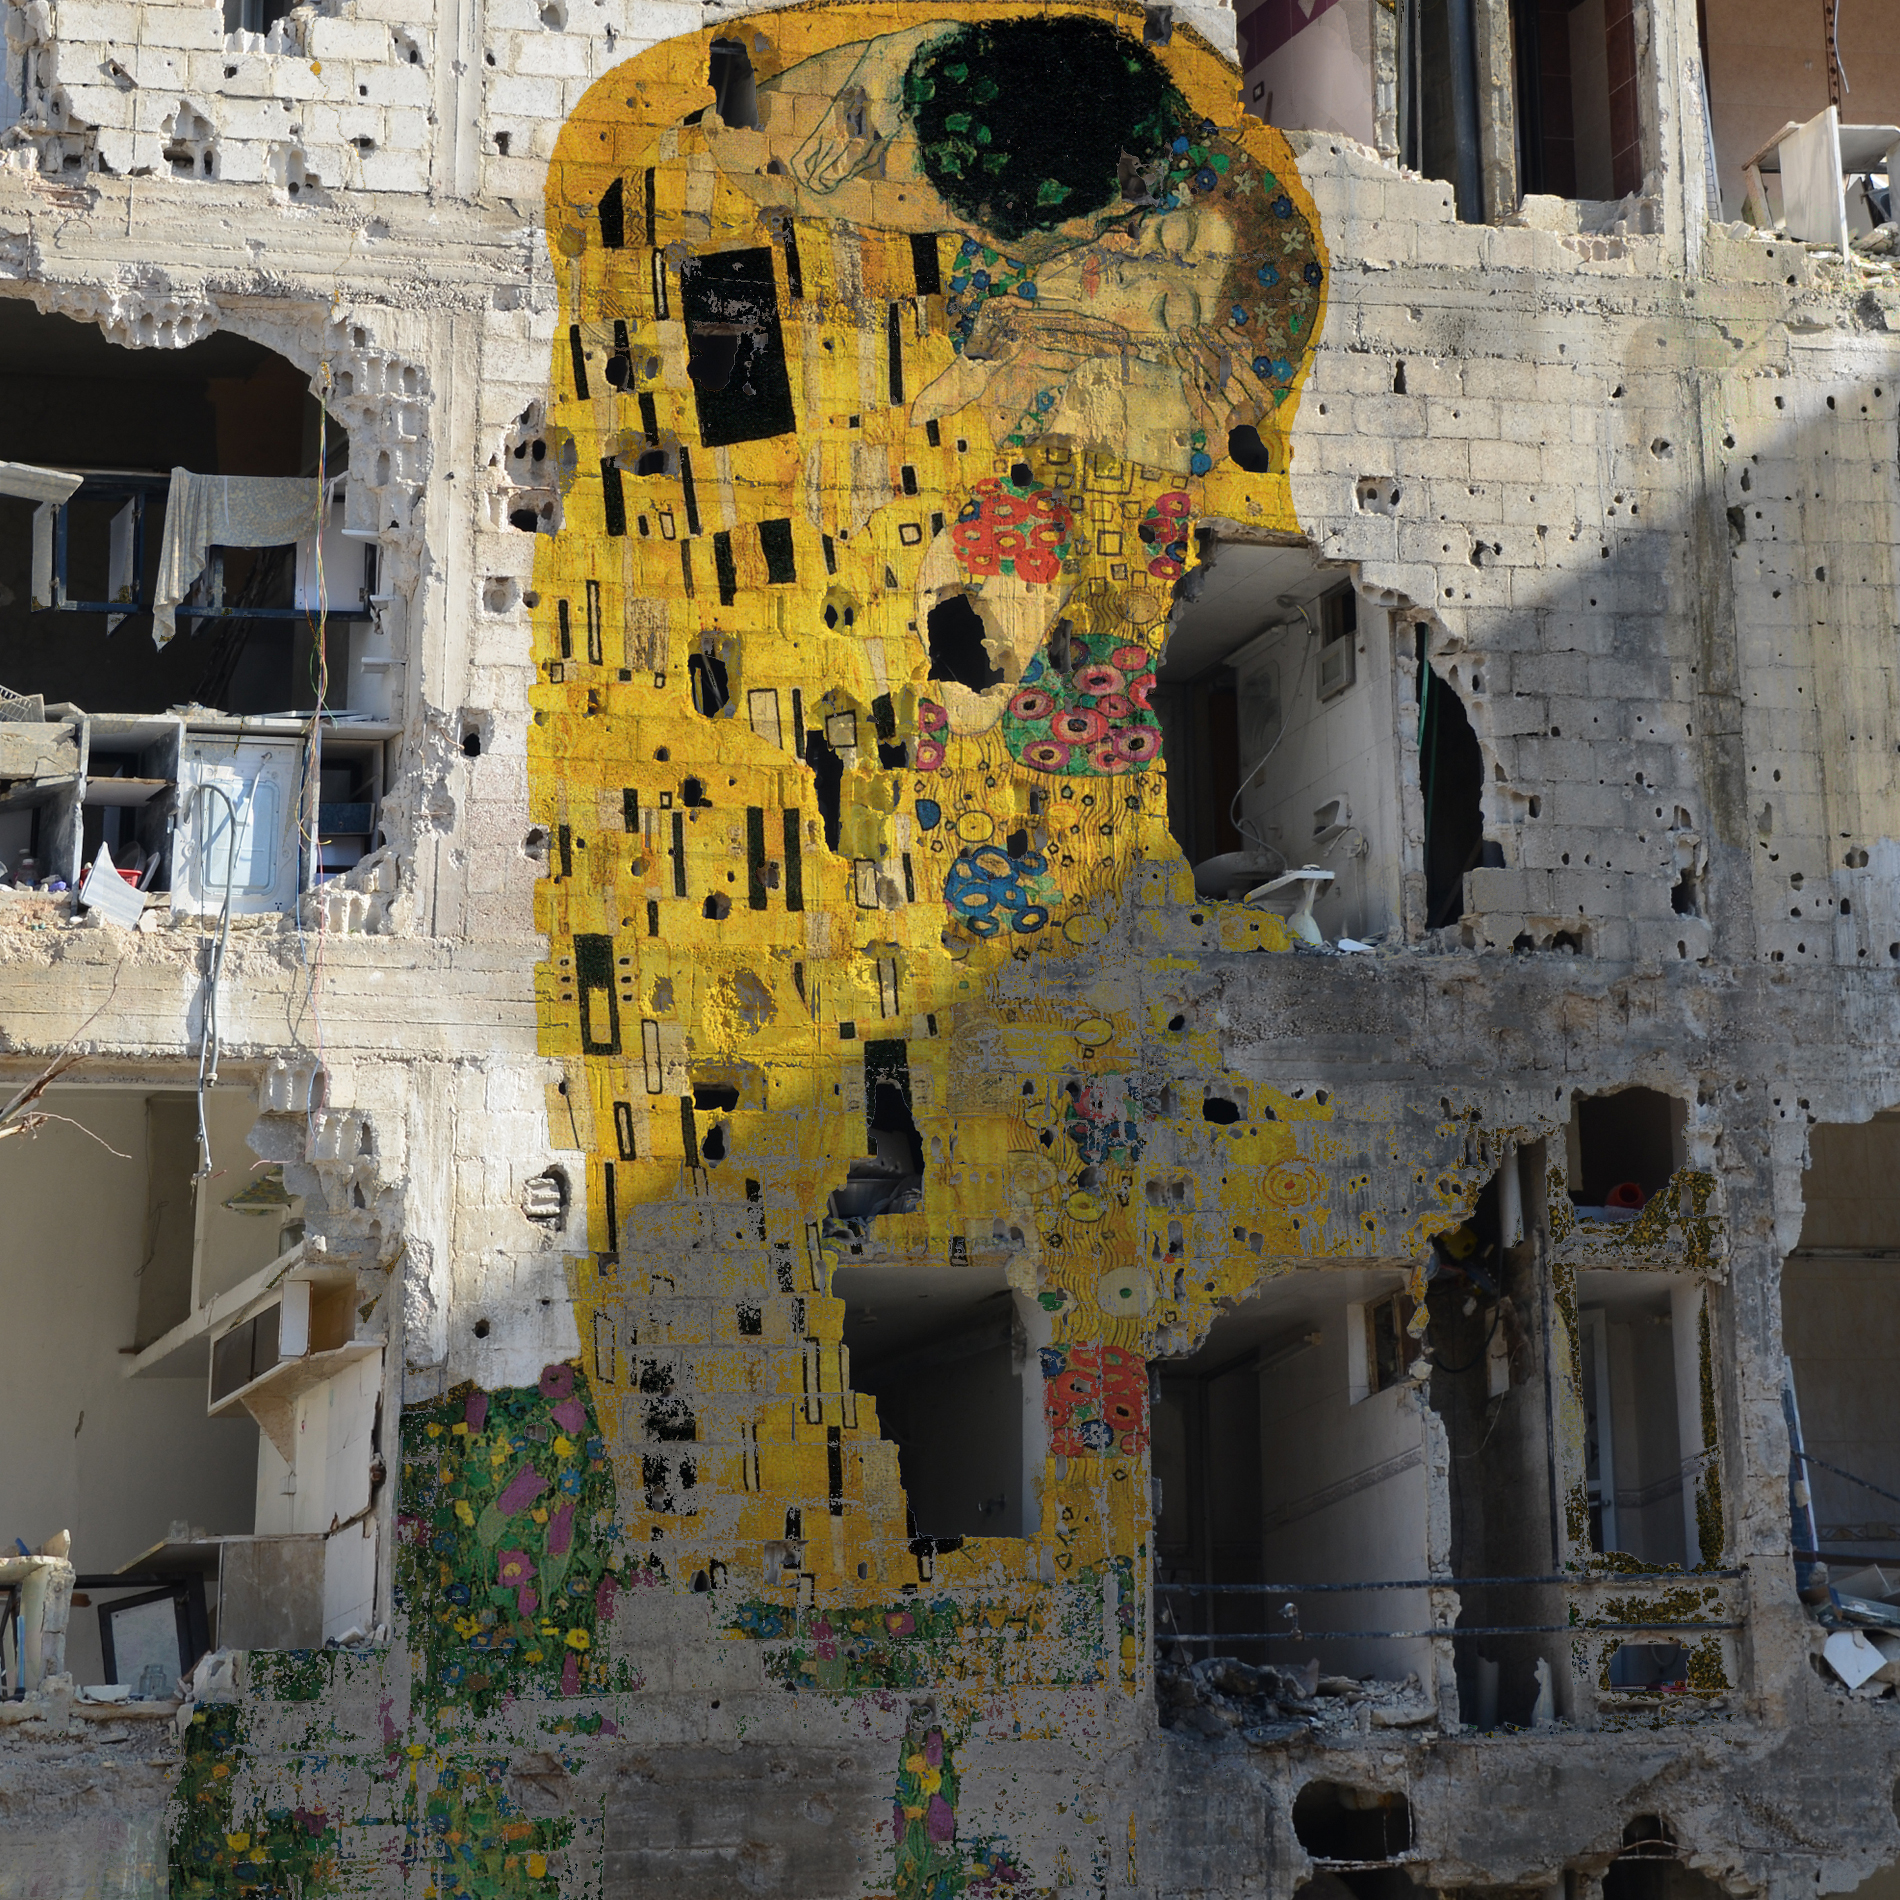 Tammam Azzam Freedom Graffiti, 150x150cm, Archival Print, 2012, Edition of 5, Courtesy of the artist and Ayyam Gallery